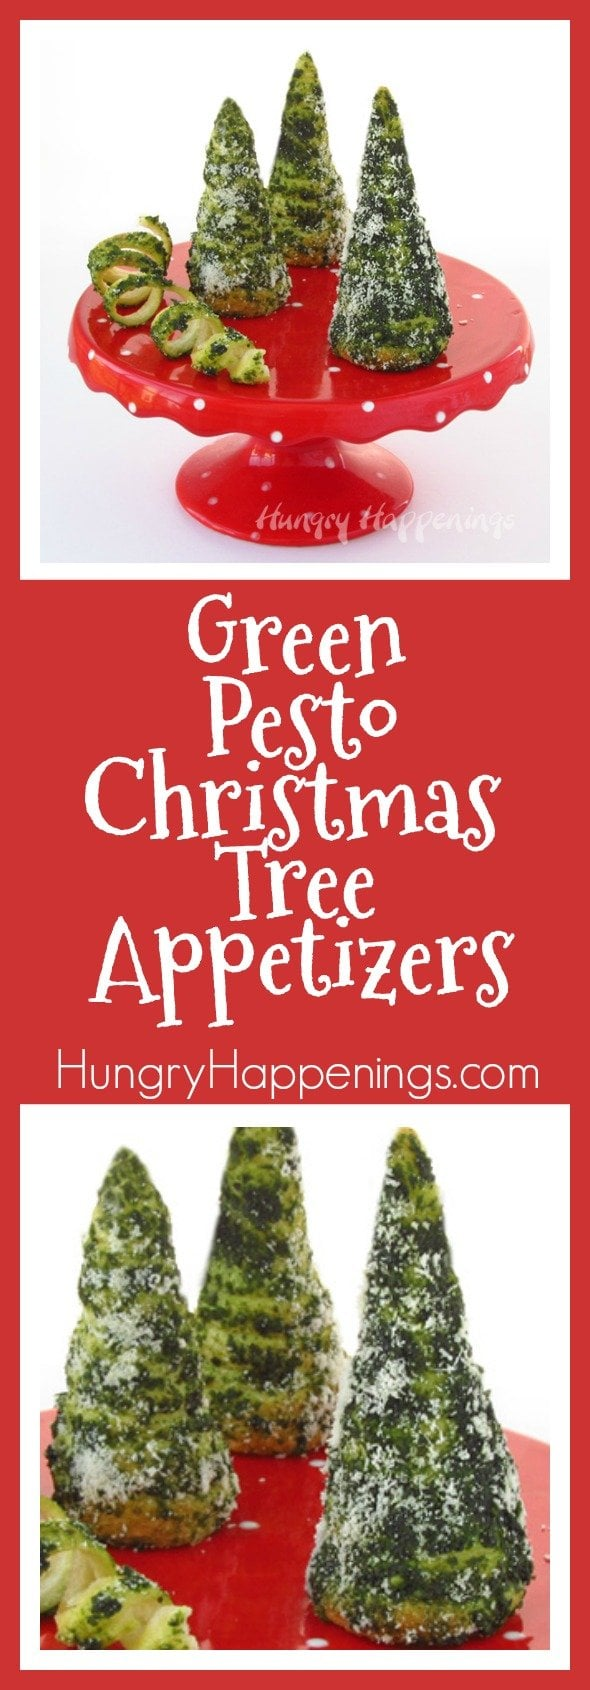 Add a touch of whimsy to your holiday meal by serving Green Pesto Crescent Roll Christmas Trees instead of dinner rolls. They are fun and easy to make.